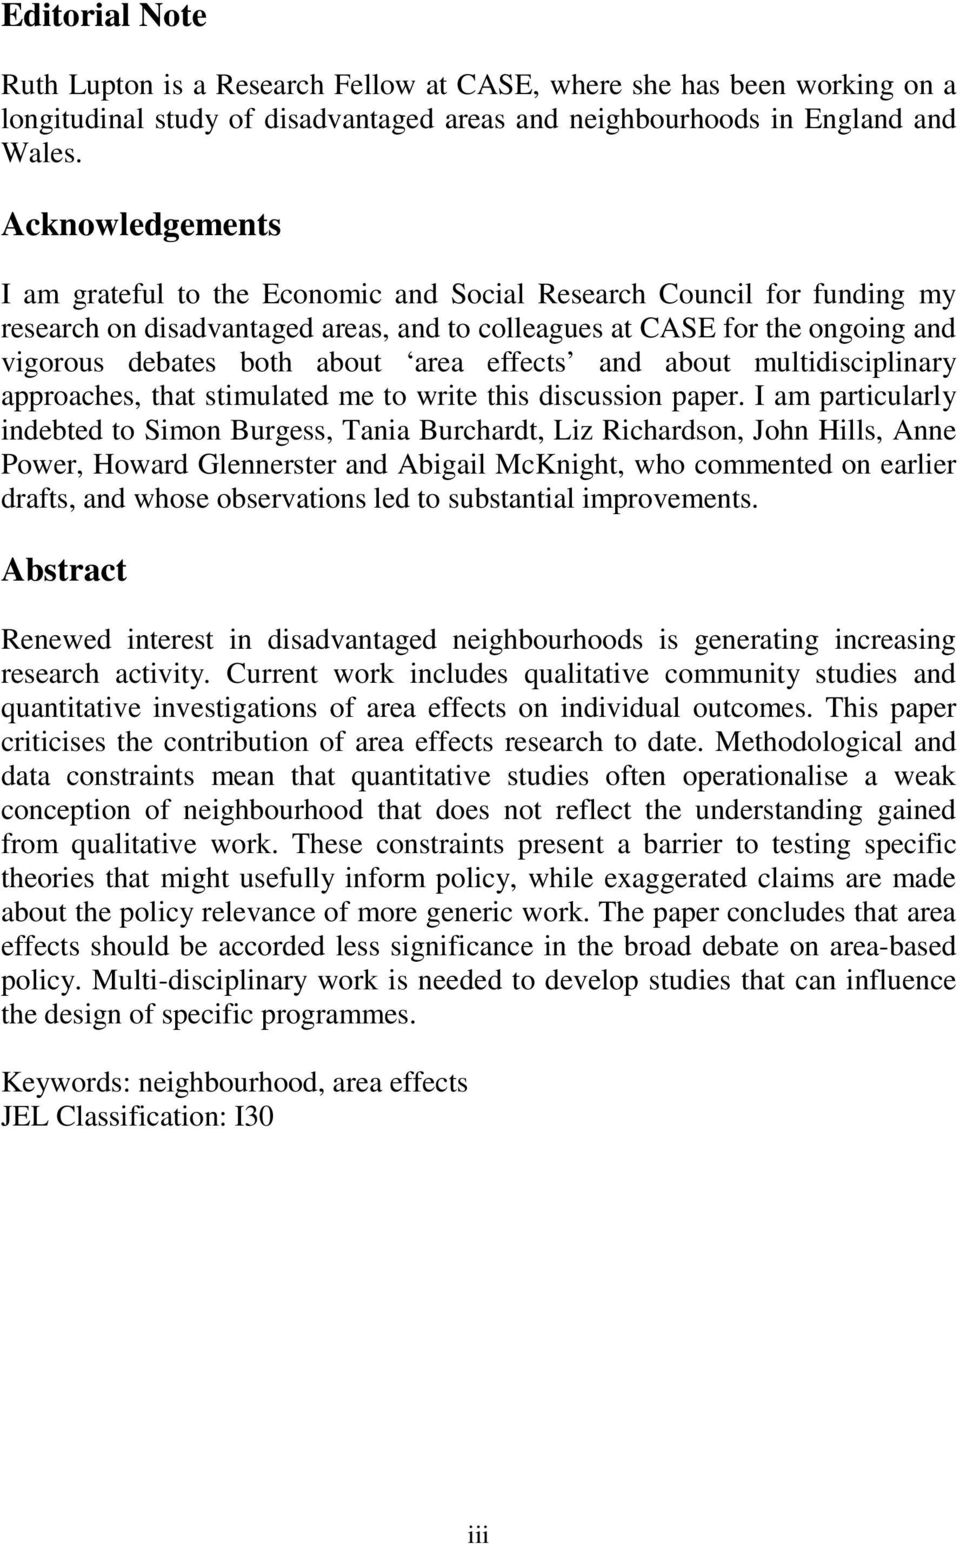 area effects and about multidisciplinary approaches, that stimulated me to write this discussion paper.